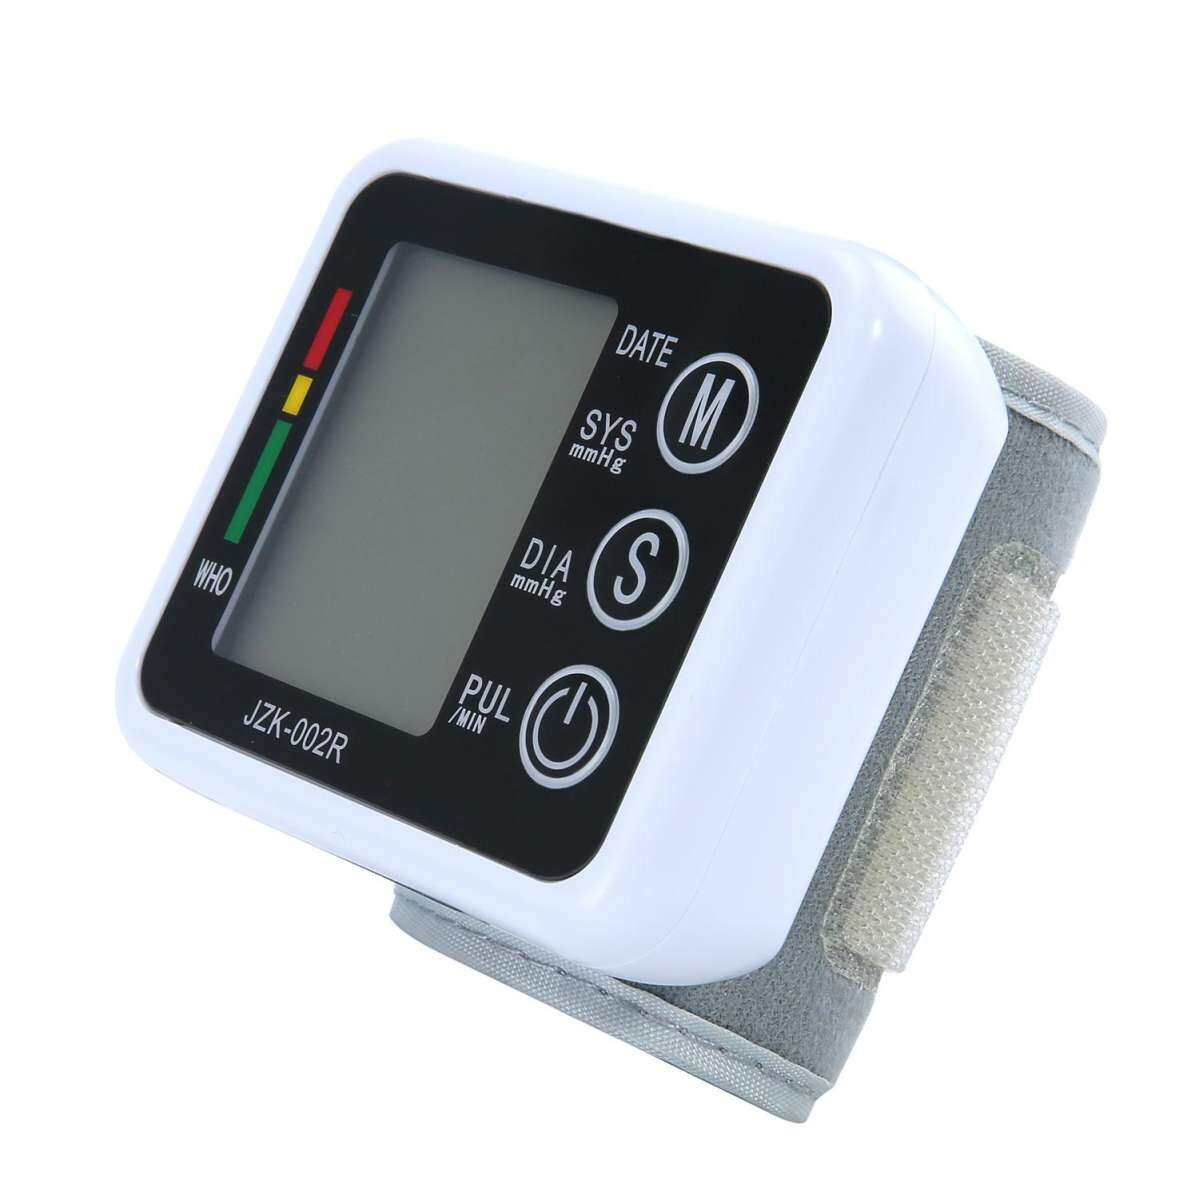 Chongqing Health Care Automatic Wrist Digital Blood Pressure Monitor Home Use Measuring Pulse Rate